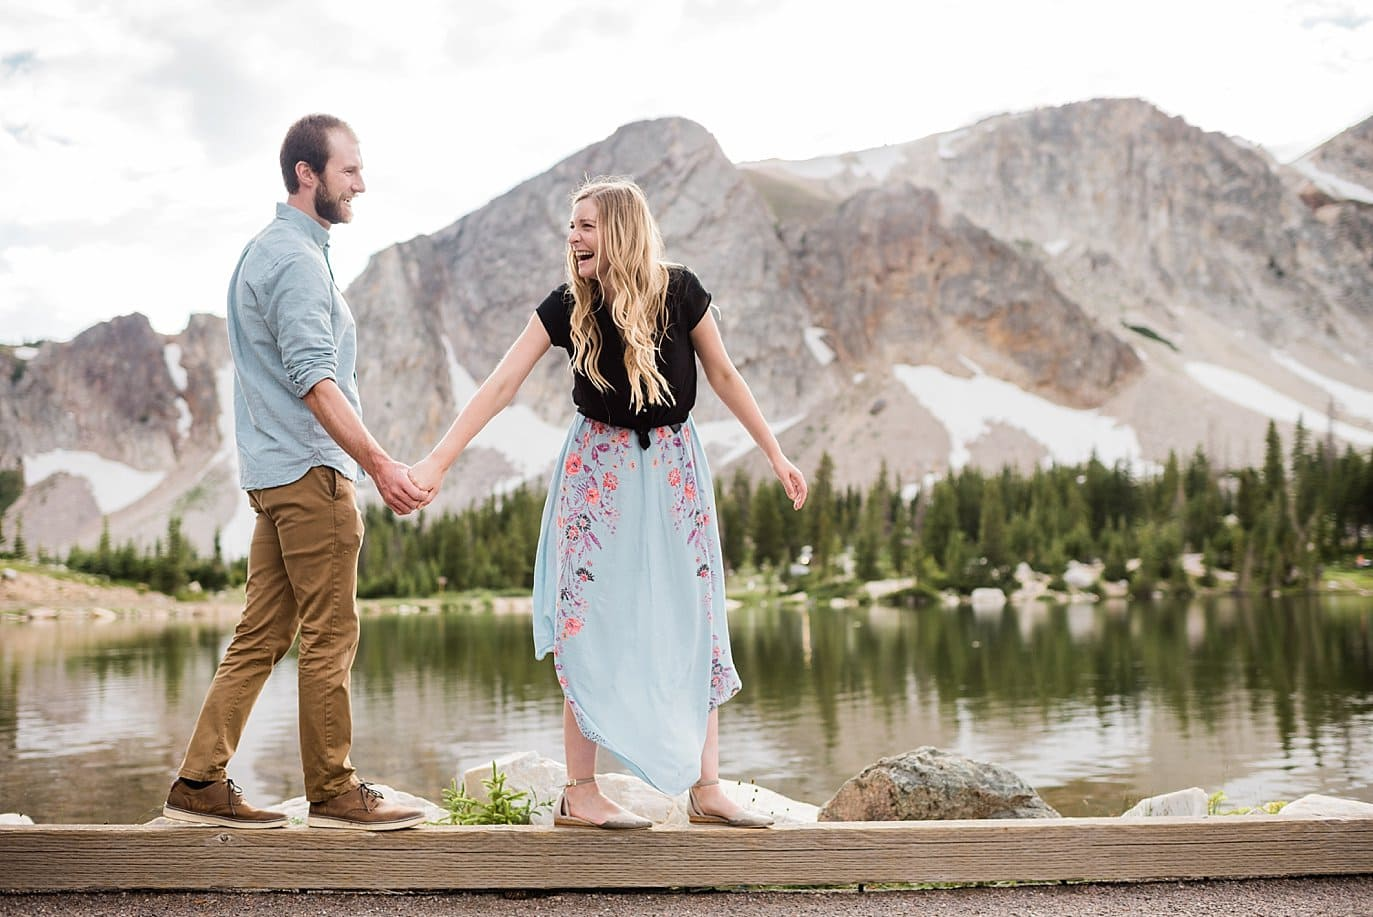 summer wyoming wedding photo